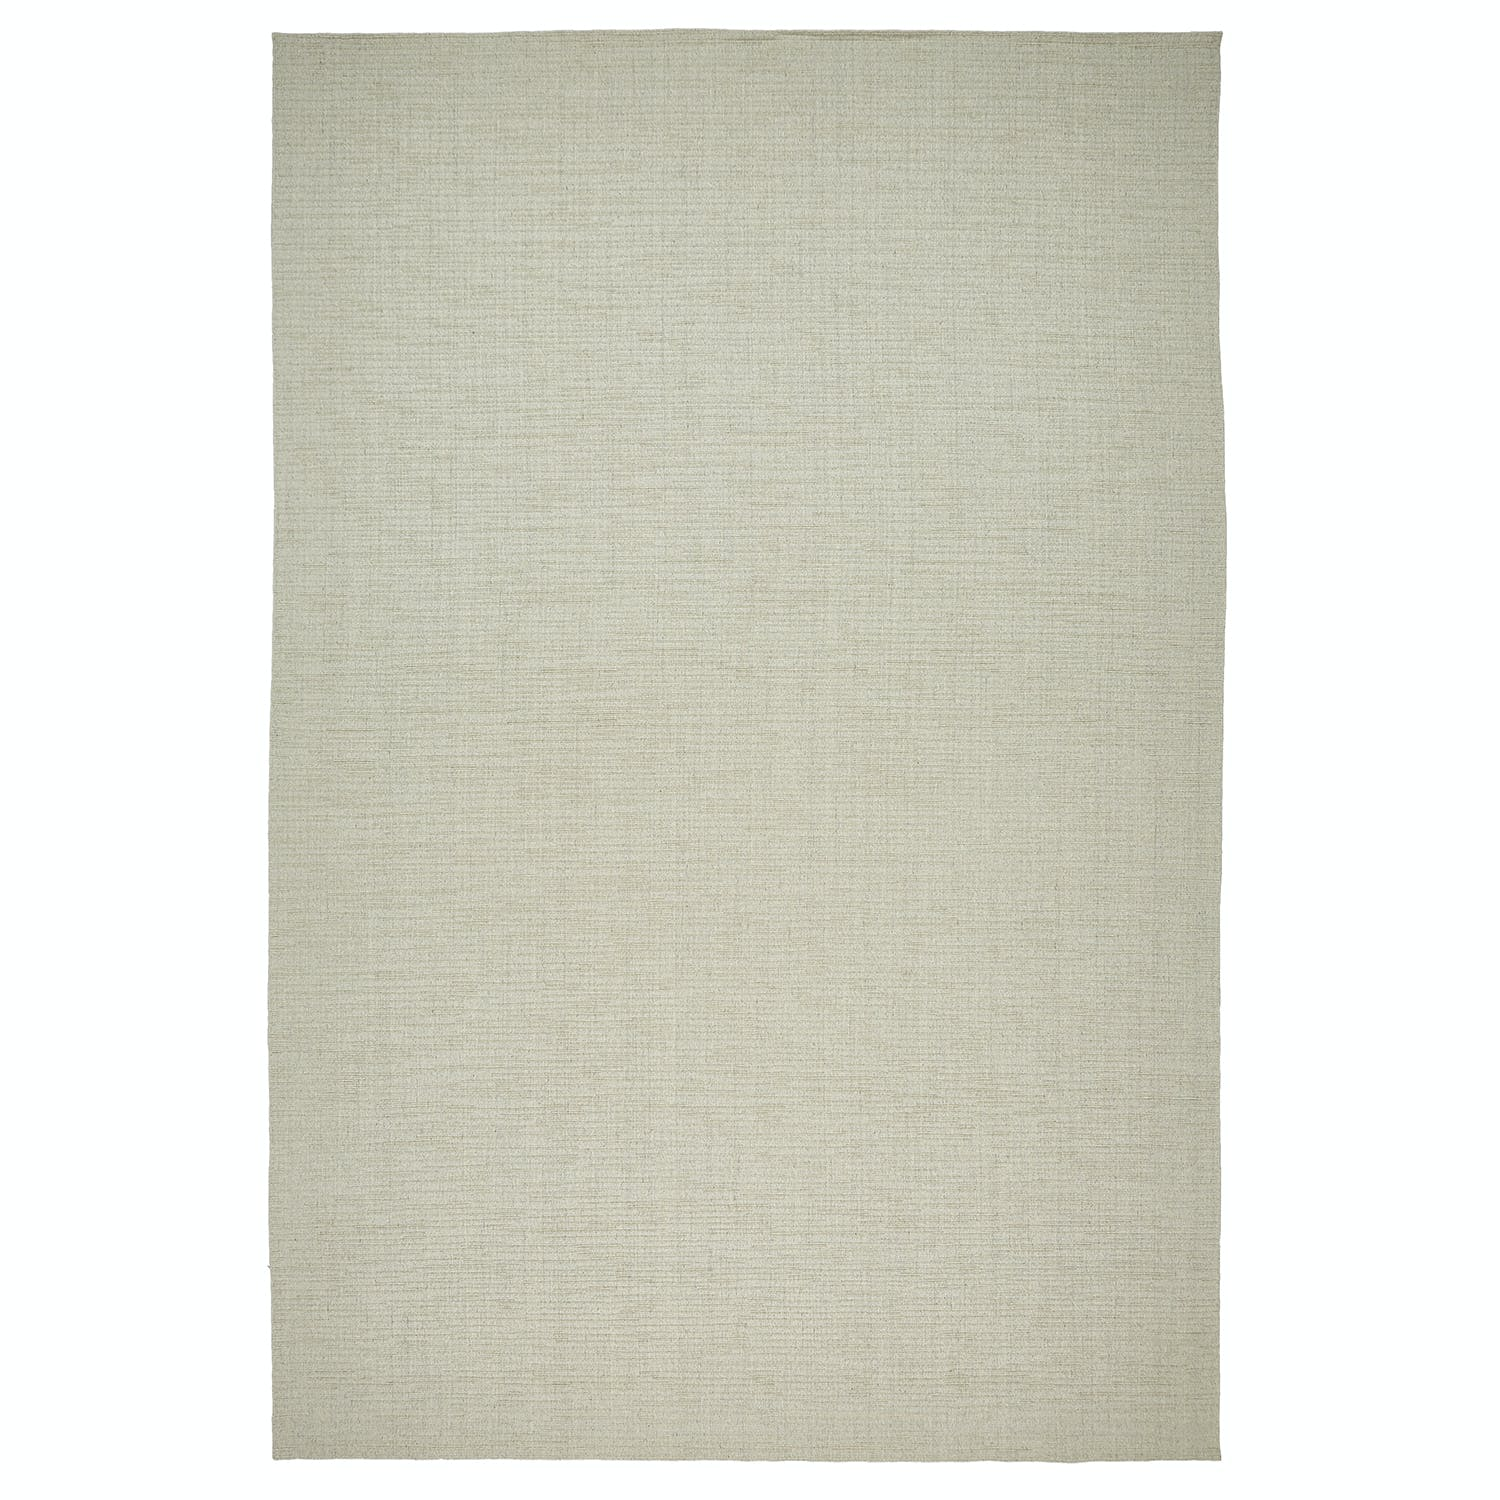 Contemporary Wool Rug-12'x18'